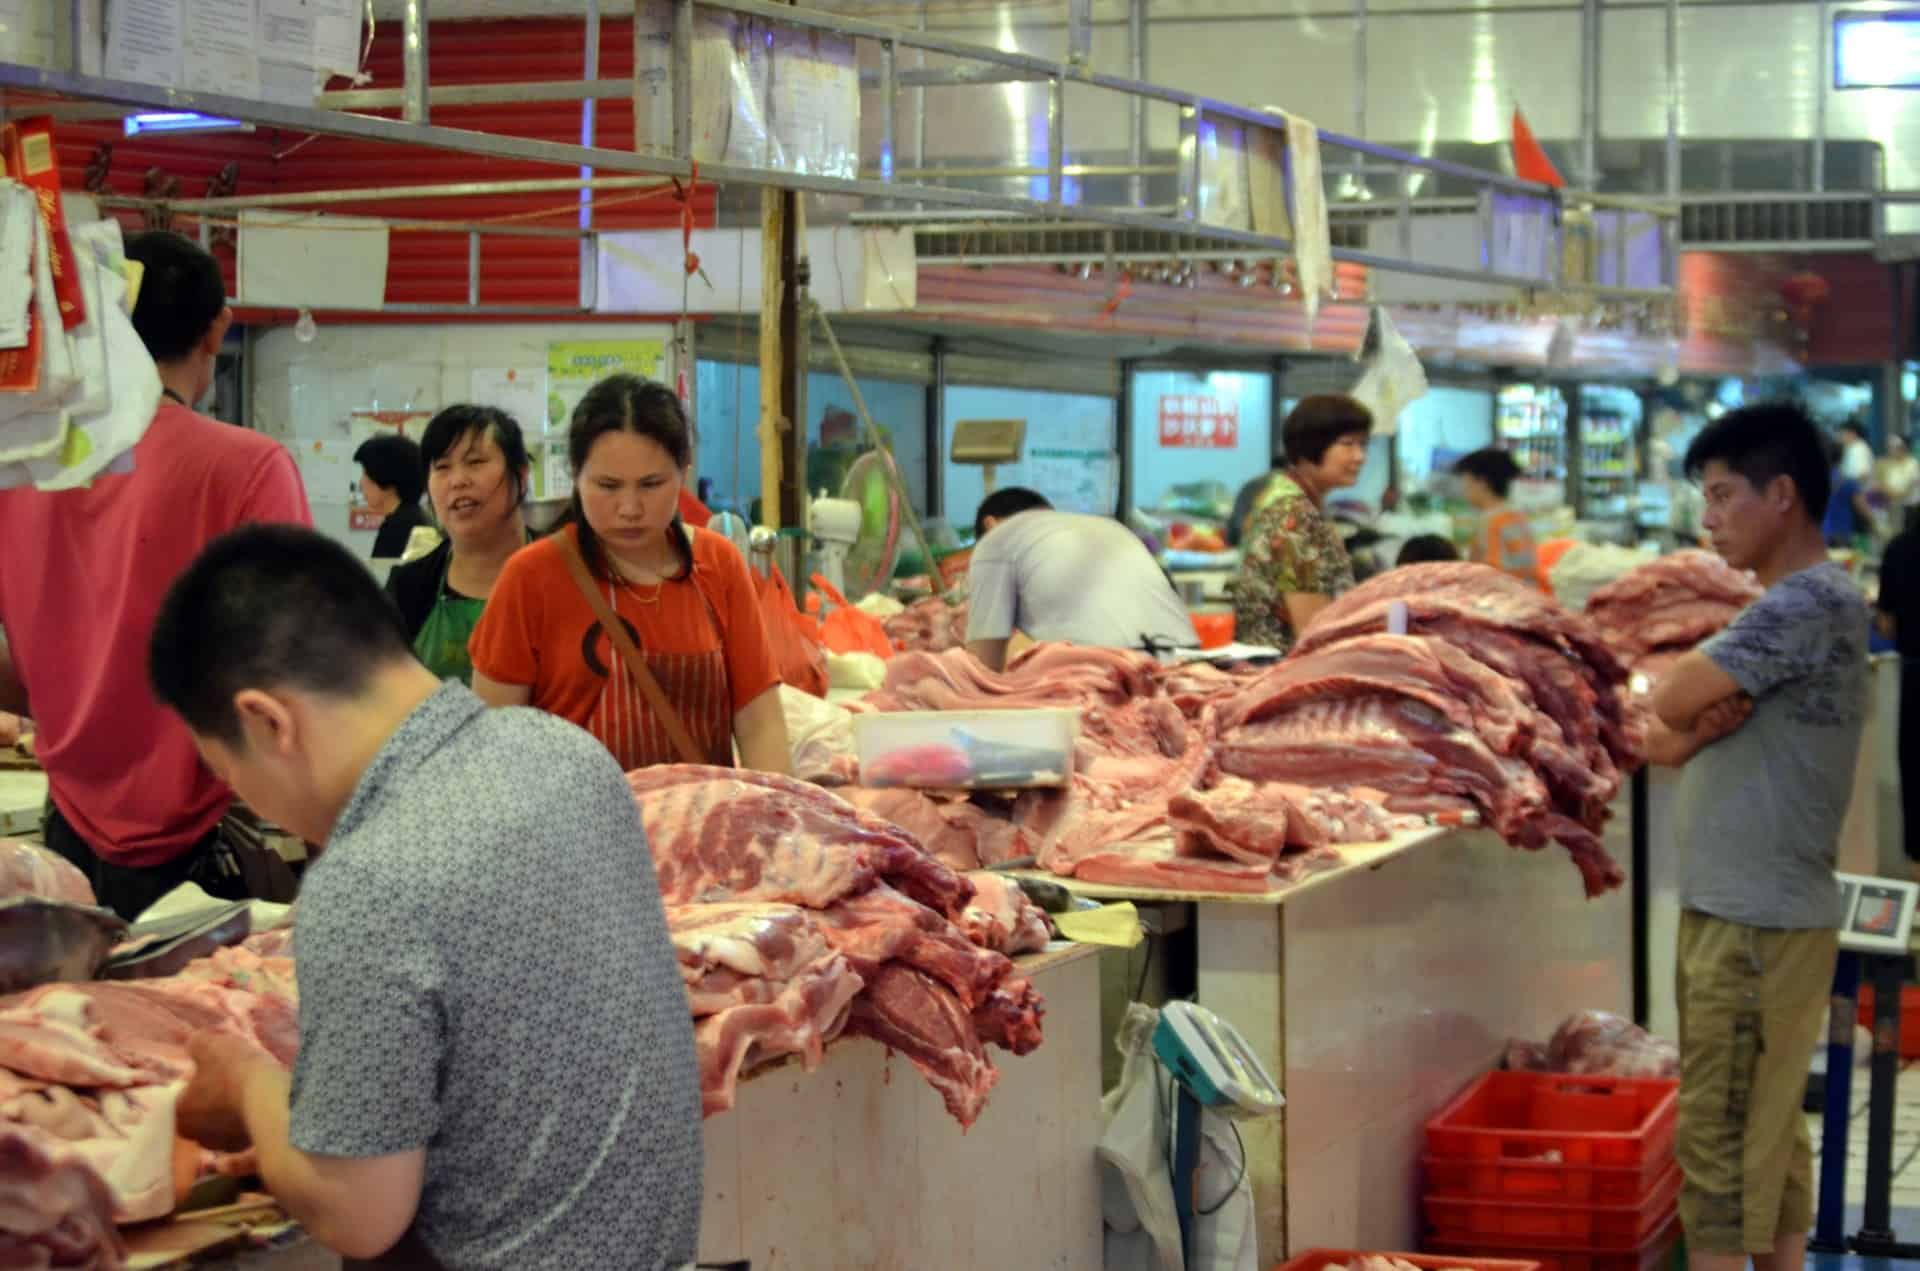 wholesale Meat Market in China via Publicdomainpictures.net